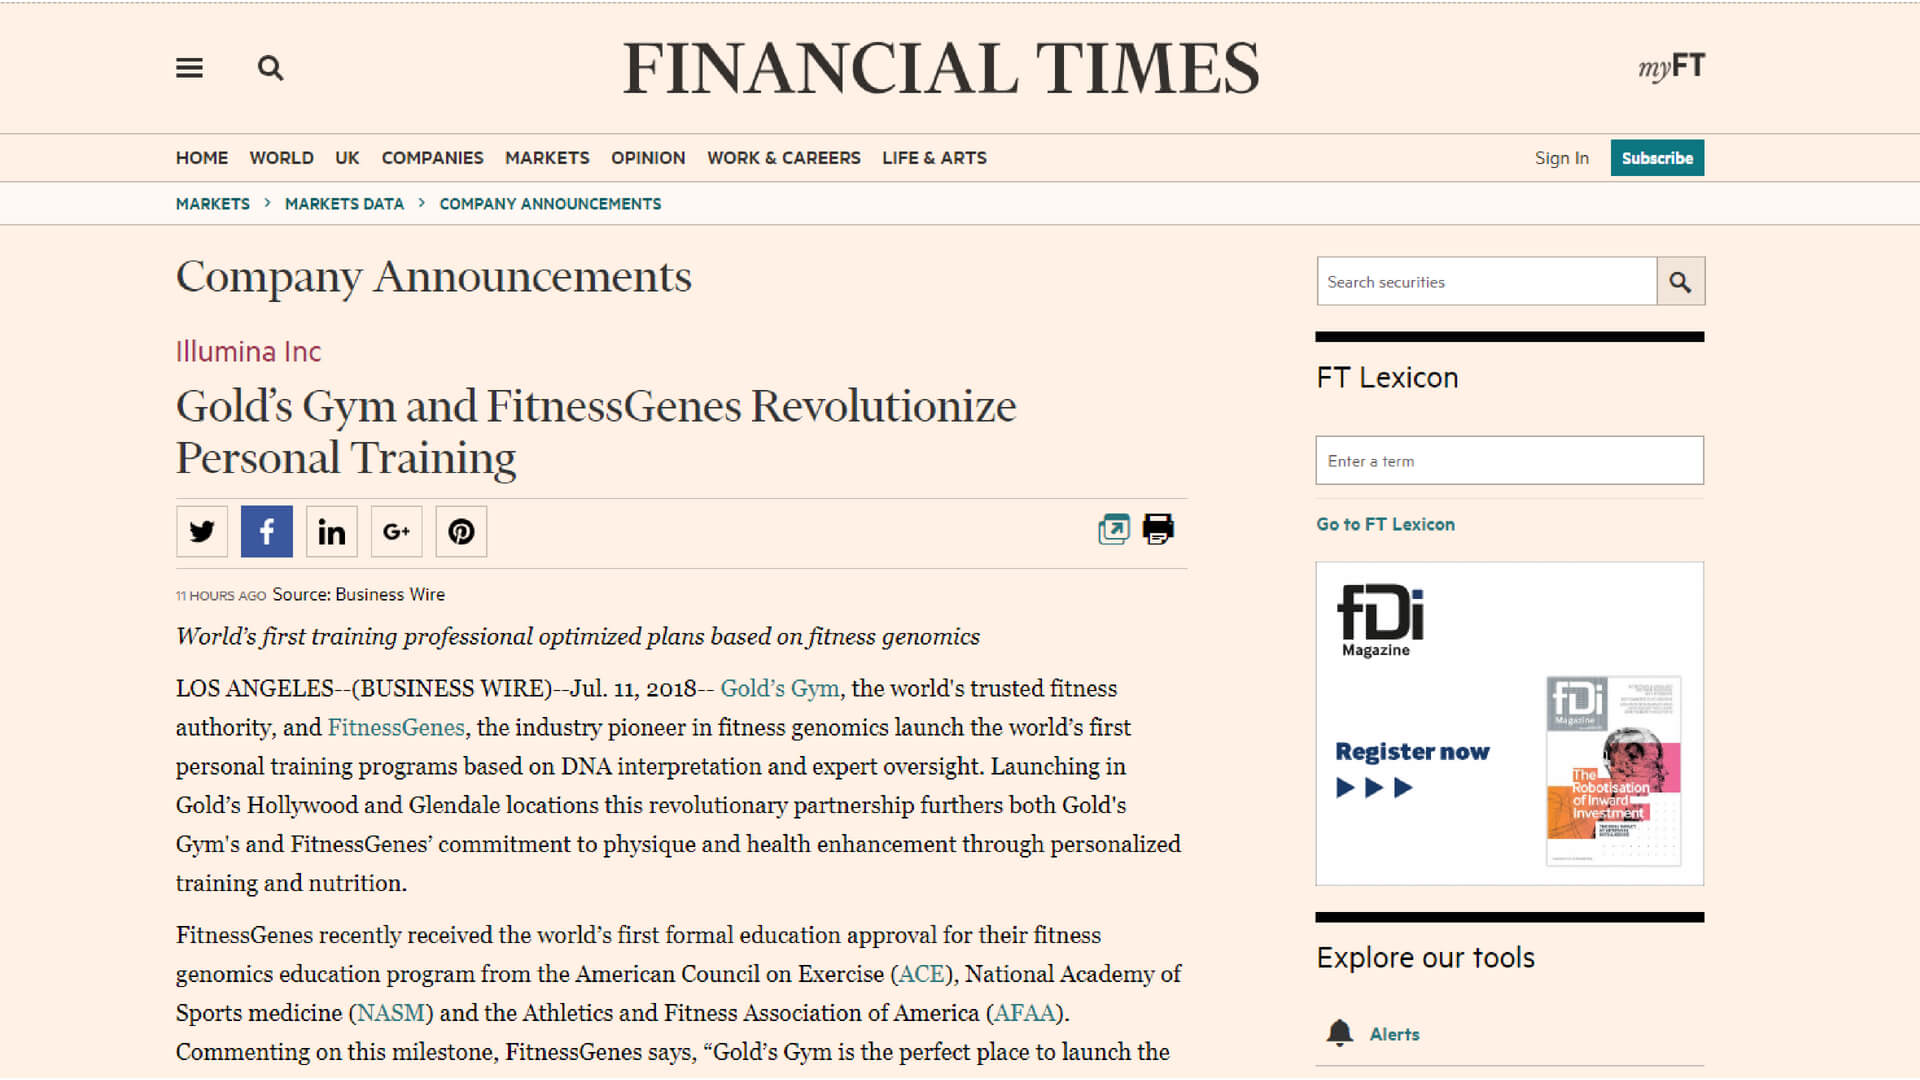 Financial Times-Gold's Gym and FitnessGenes Revolutionize Personal Training